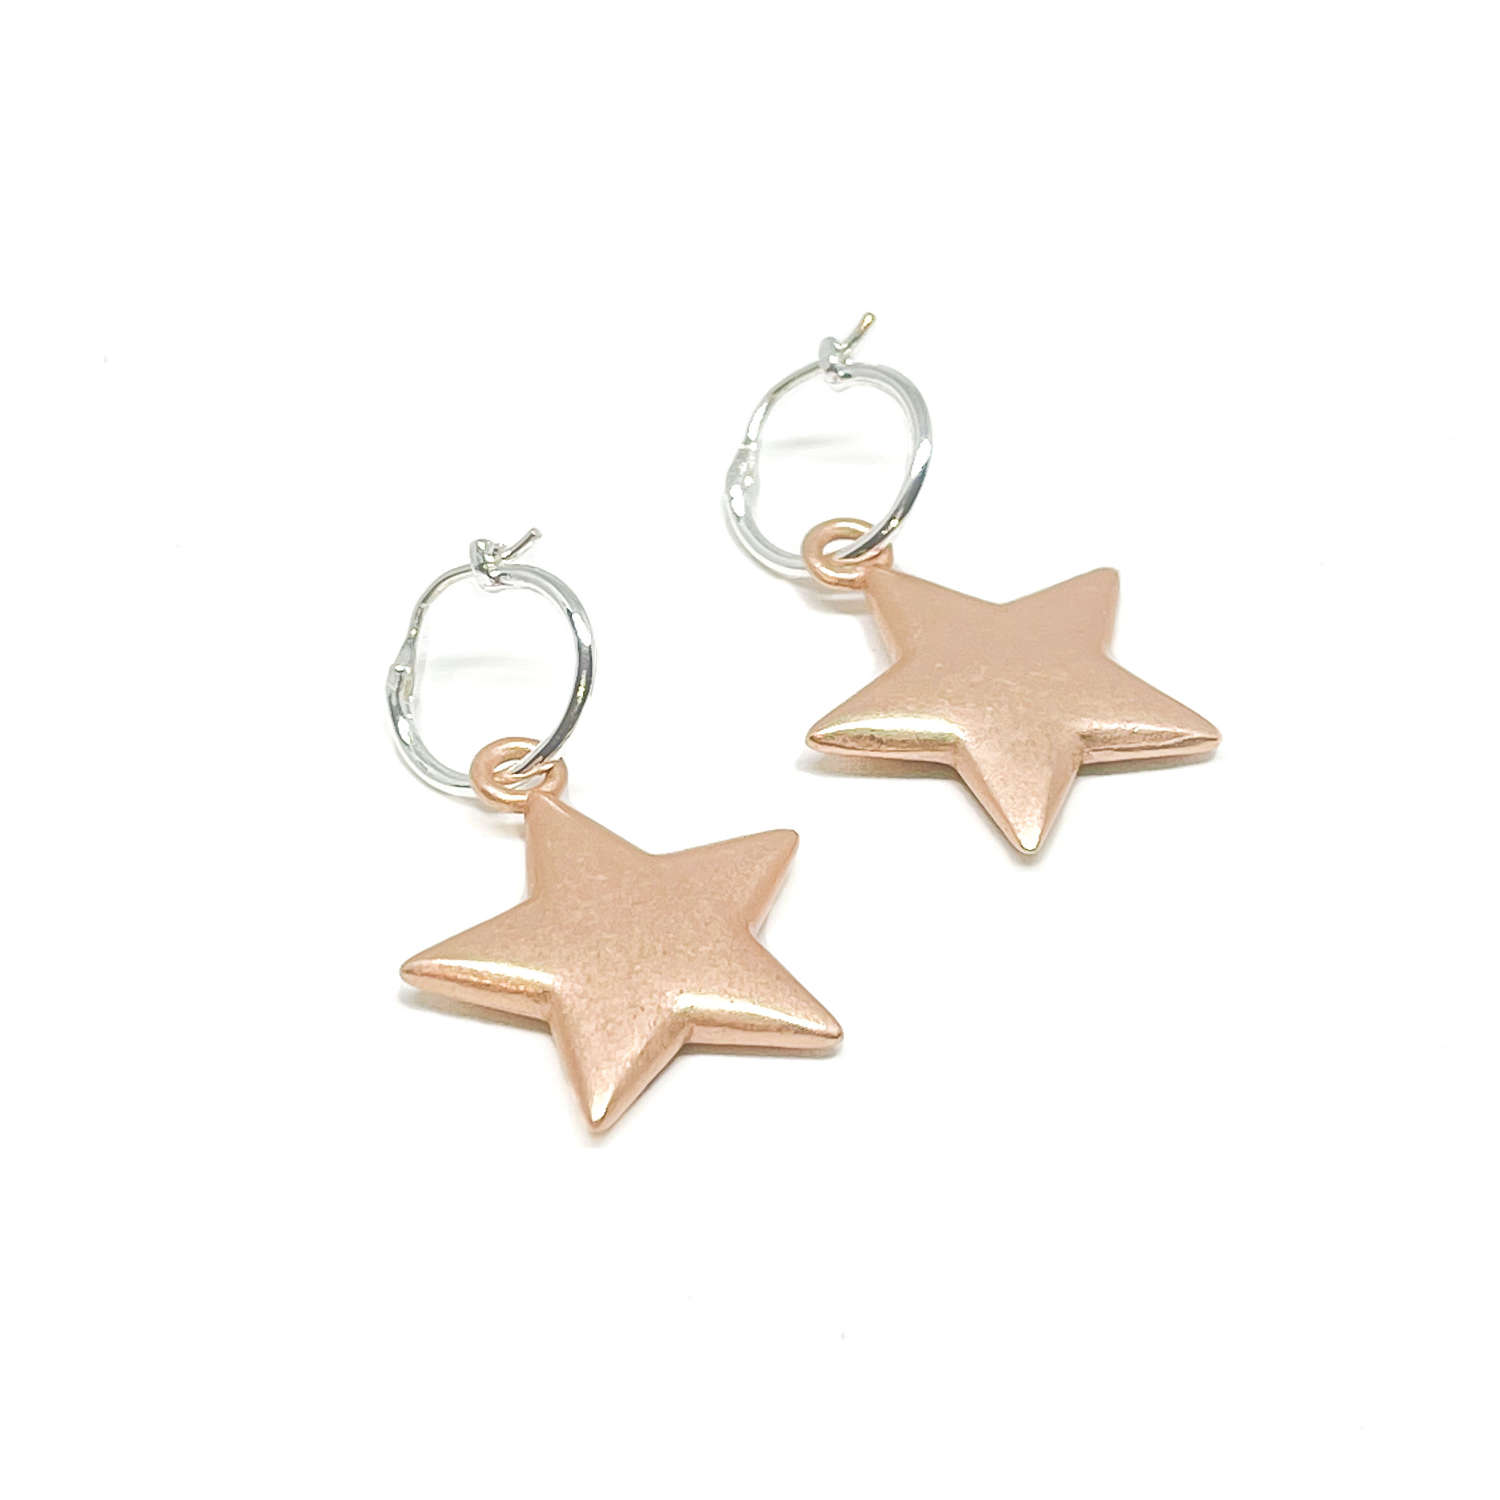 Florence Sterling Silver Earrings - Rose Gold